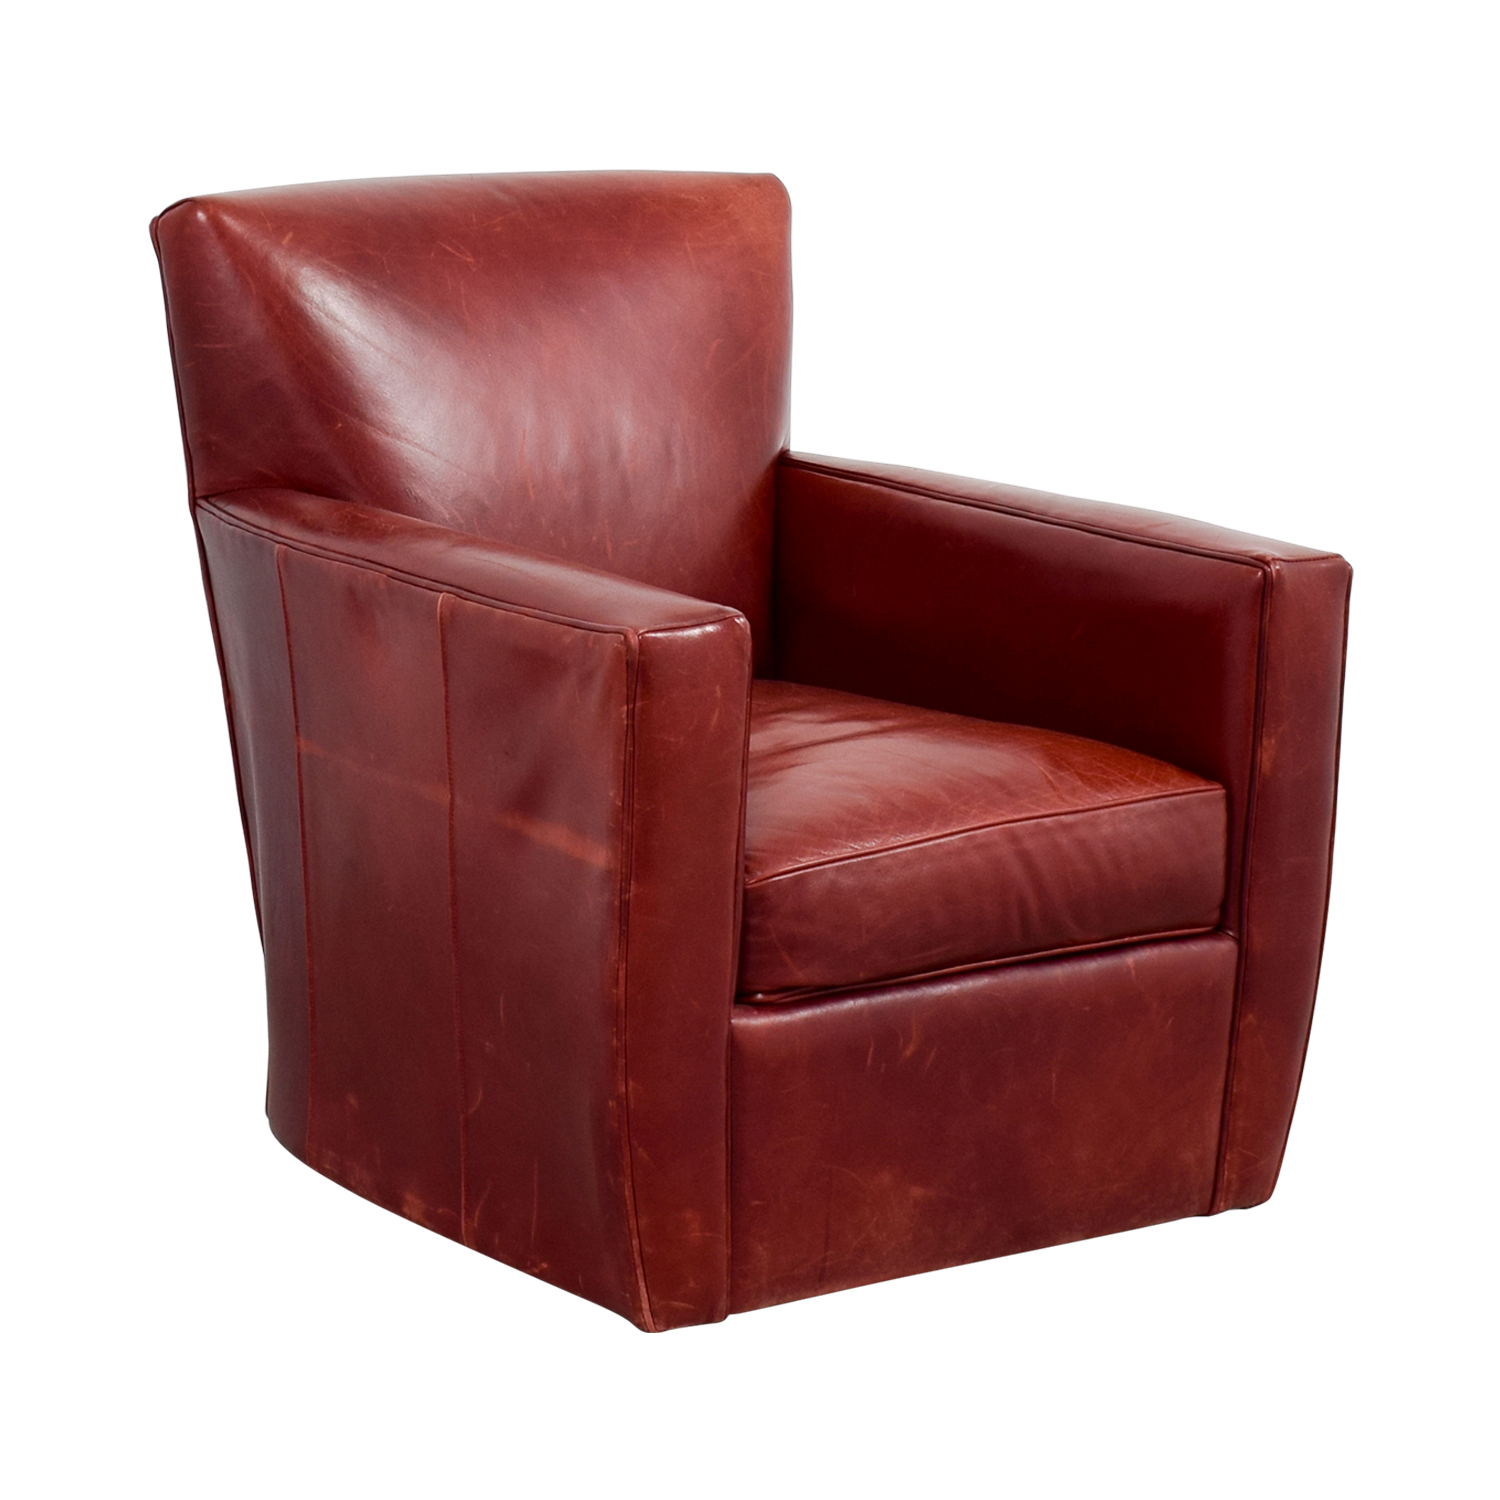 ... Crate U0026 Barrel Crate U0026 Barrel Leather Swivel Chair Discount ...